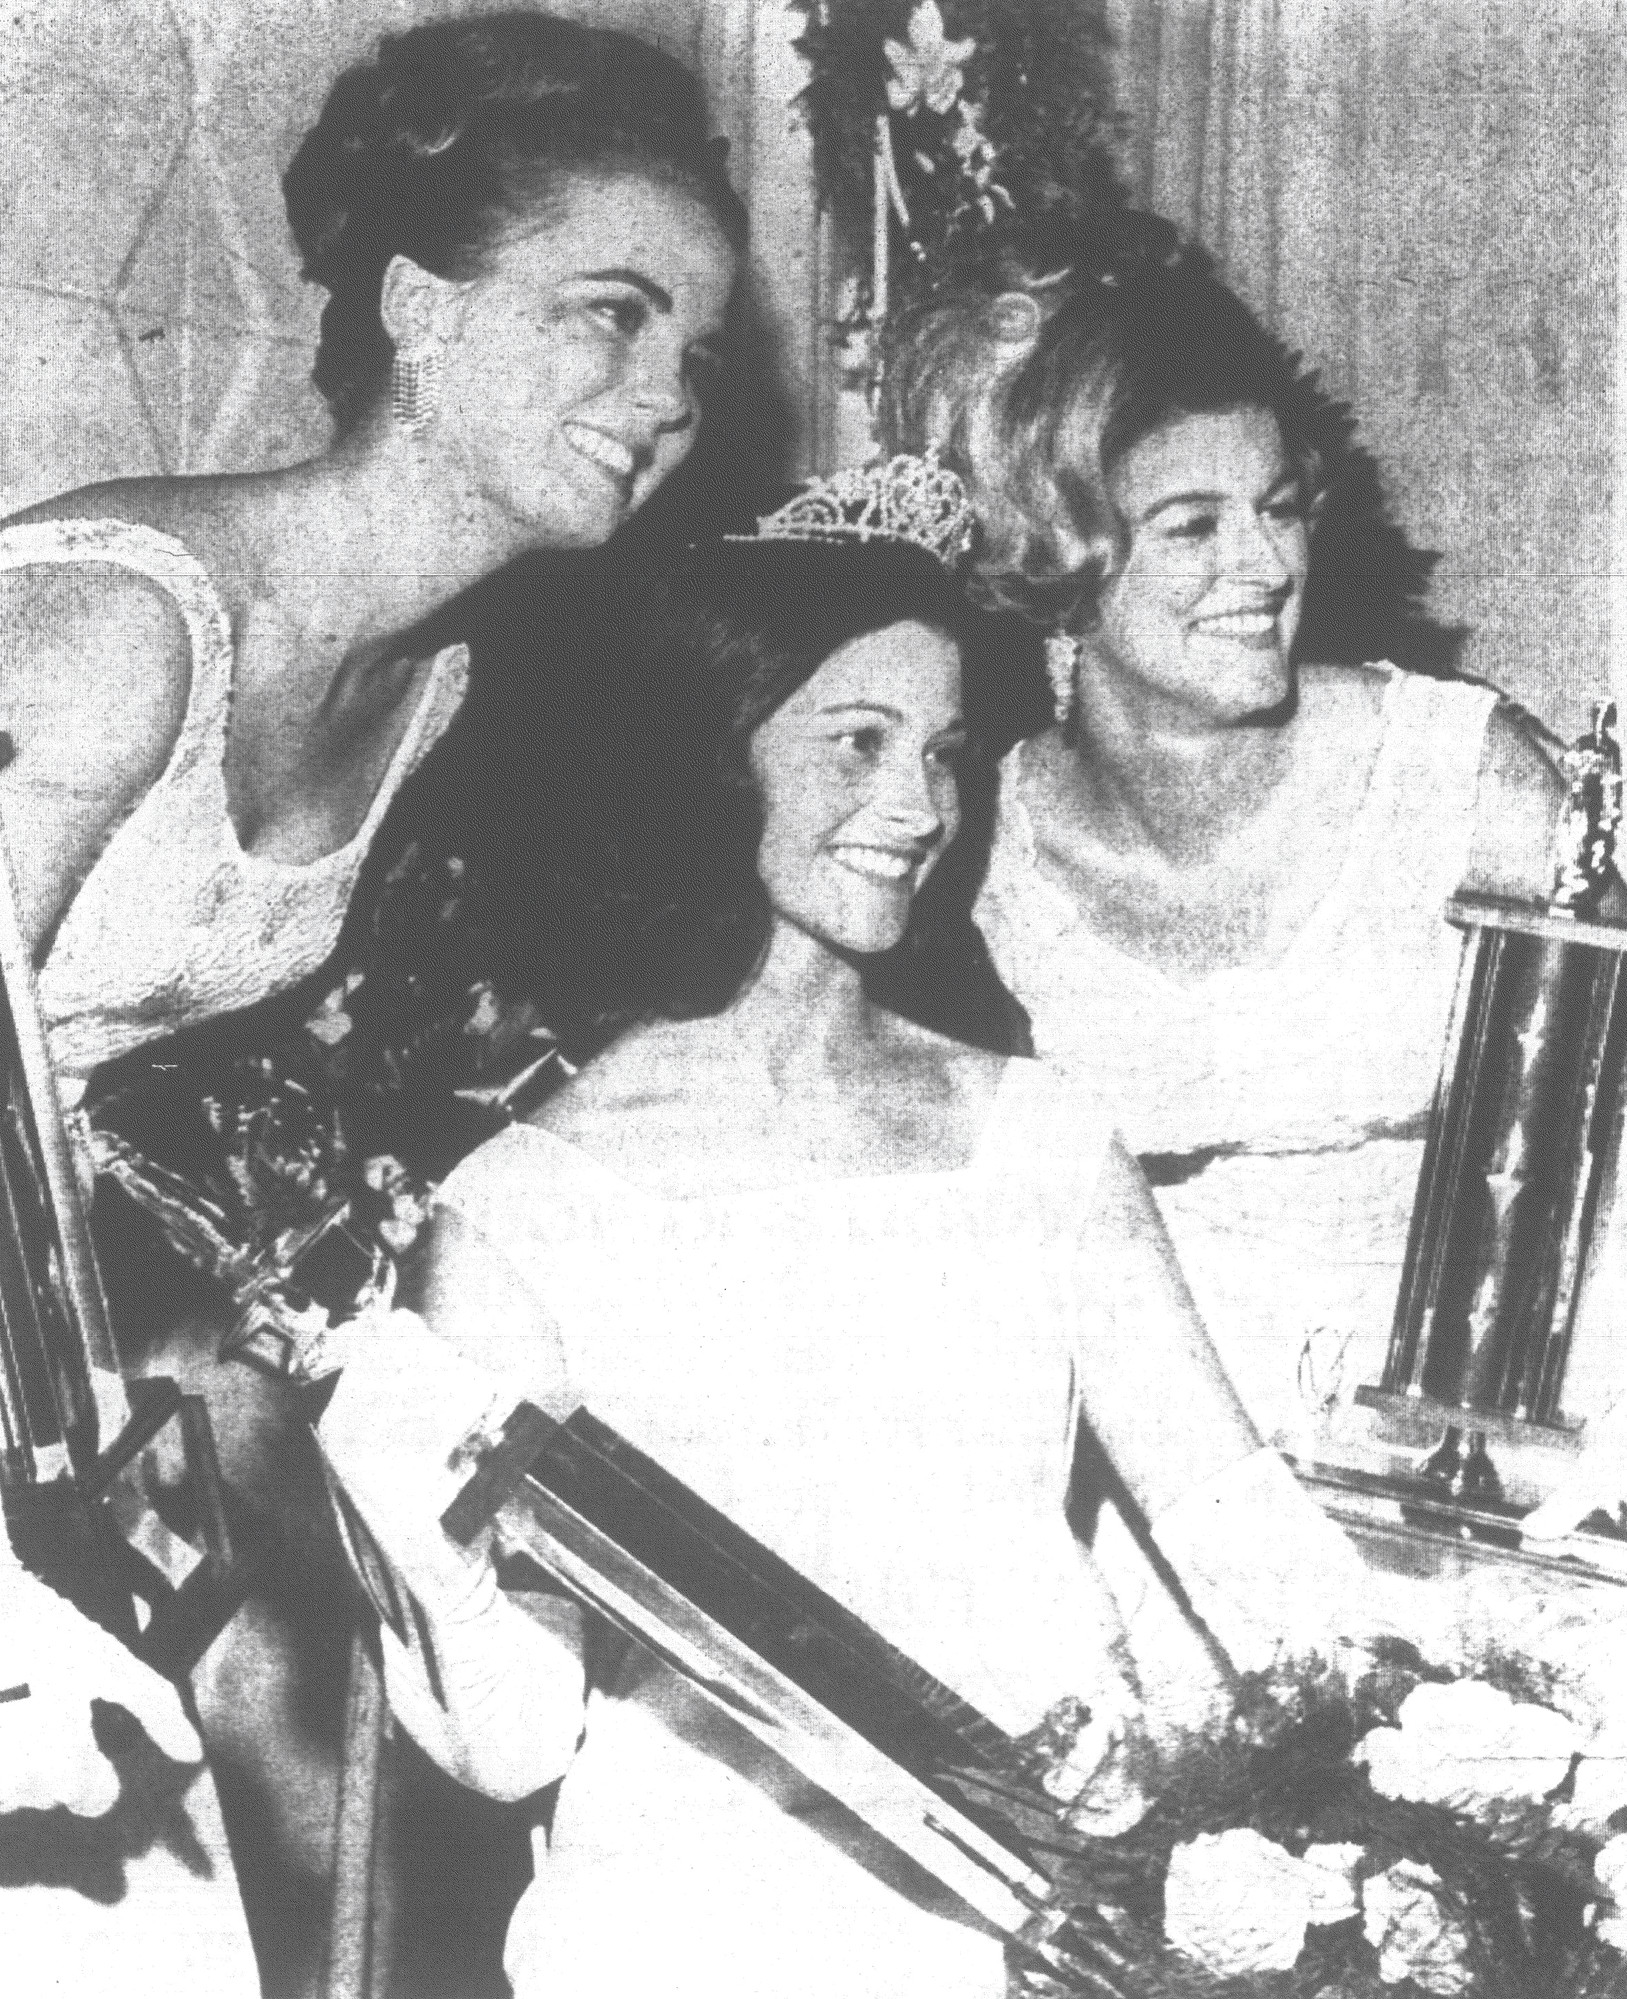 1968 - Newly crowned 1968 Queen Iris Roberta Mathis of Manning is flanked on the left by first runner-up Judy Ann Christensen, Miss Hartsville, and on the right by second runner-up Dayle Marchette. Roberta Mathis will be the reigning queen for the 1969 version of Sumter's world-famous Iris Festival.